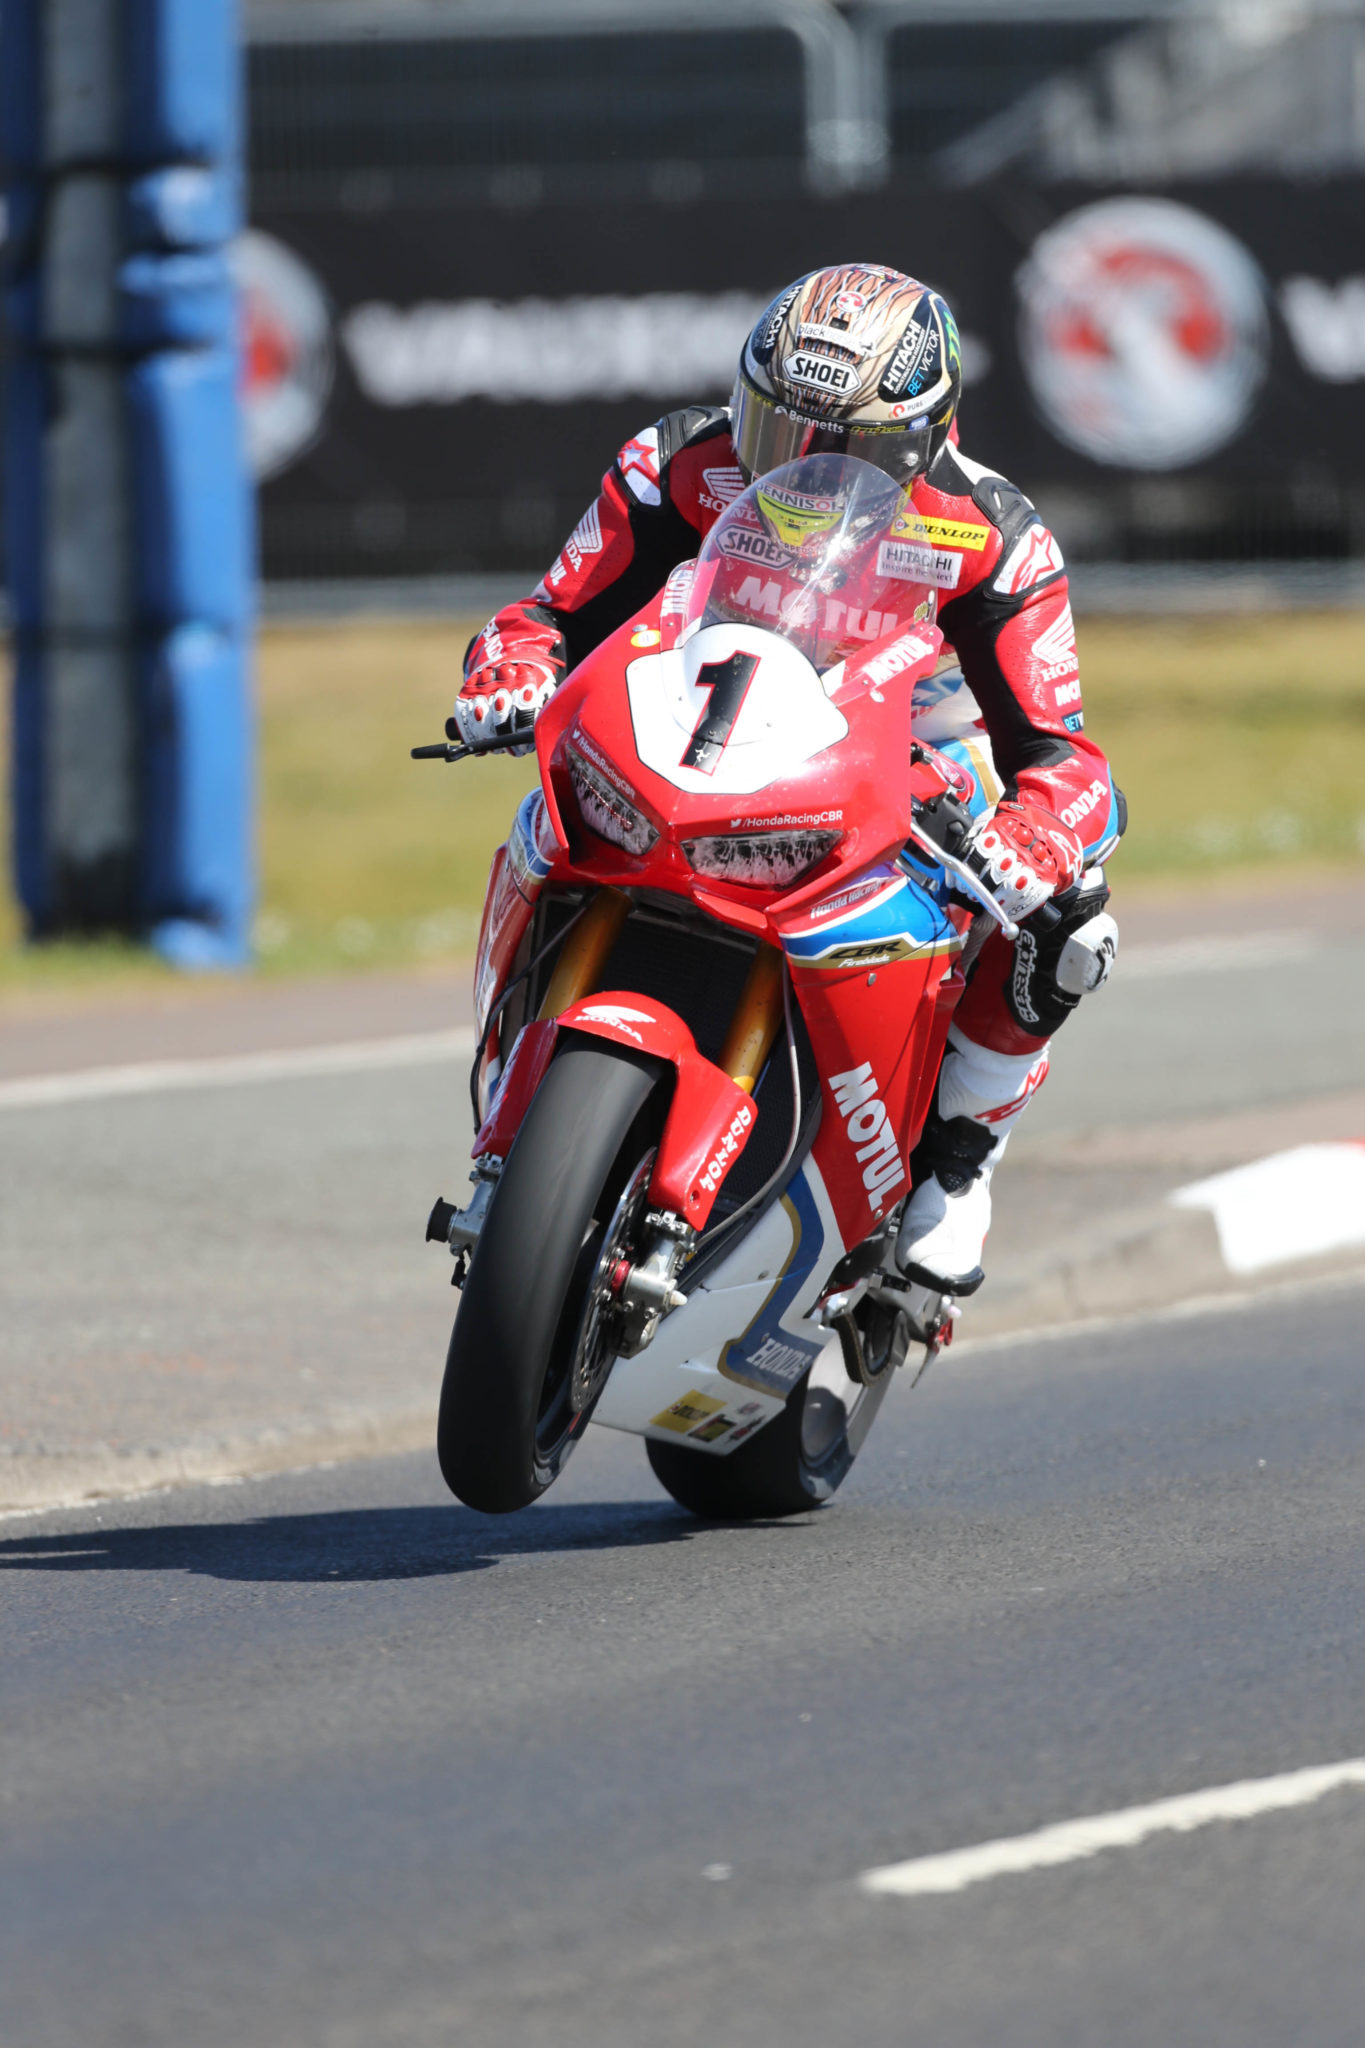 PACEMAKER BELFAST 09/05/2017 John McGuinness at the Vauxhall International North West 200 out on his super bike for Tuesday practice laps. Photo Stephen Davison/Pacemaker Press